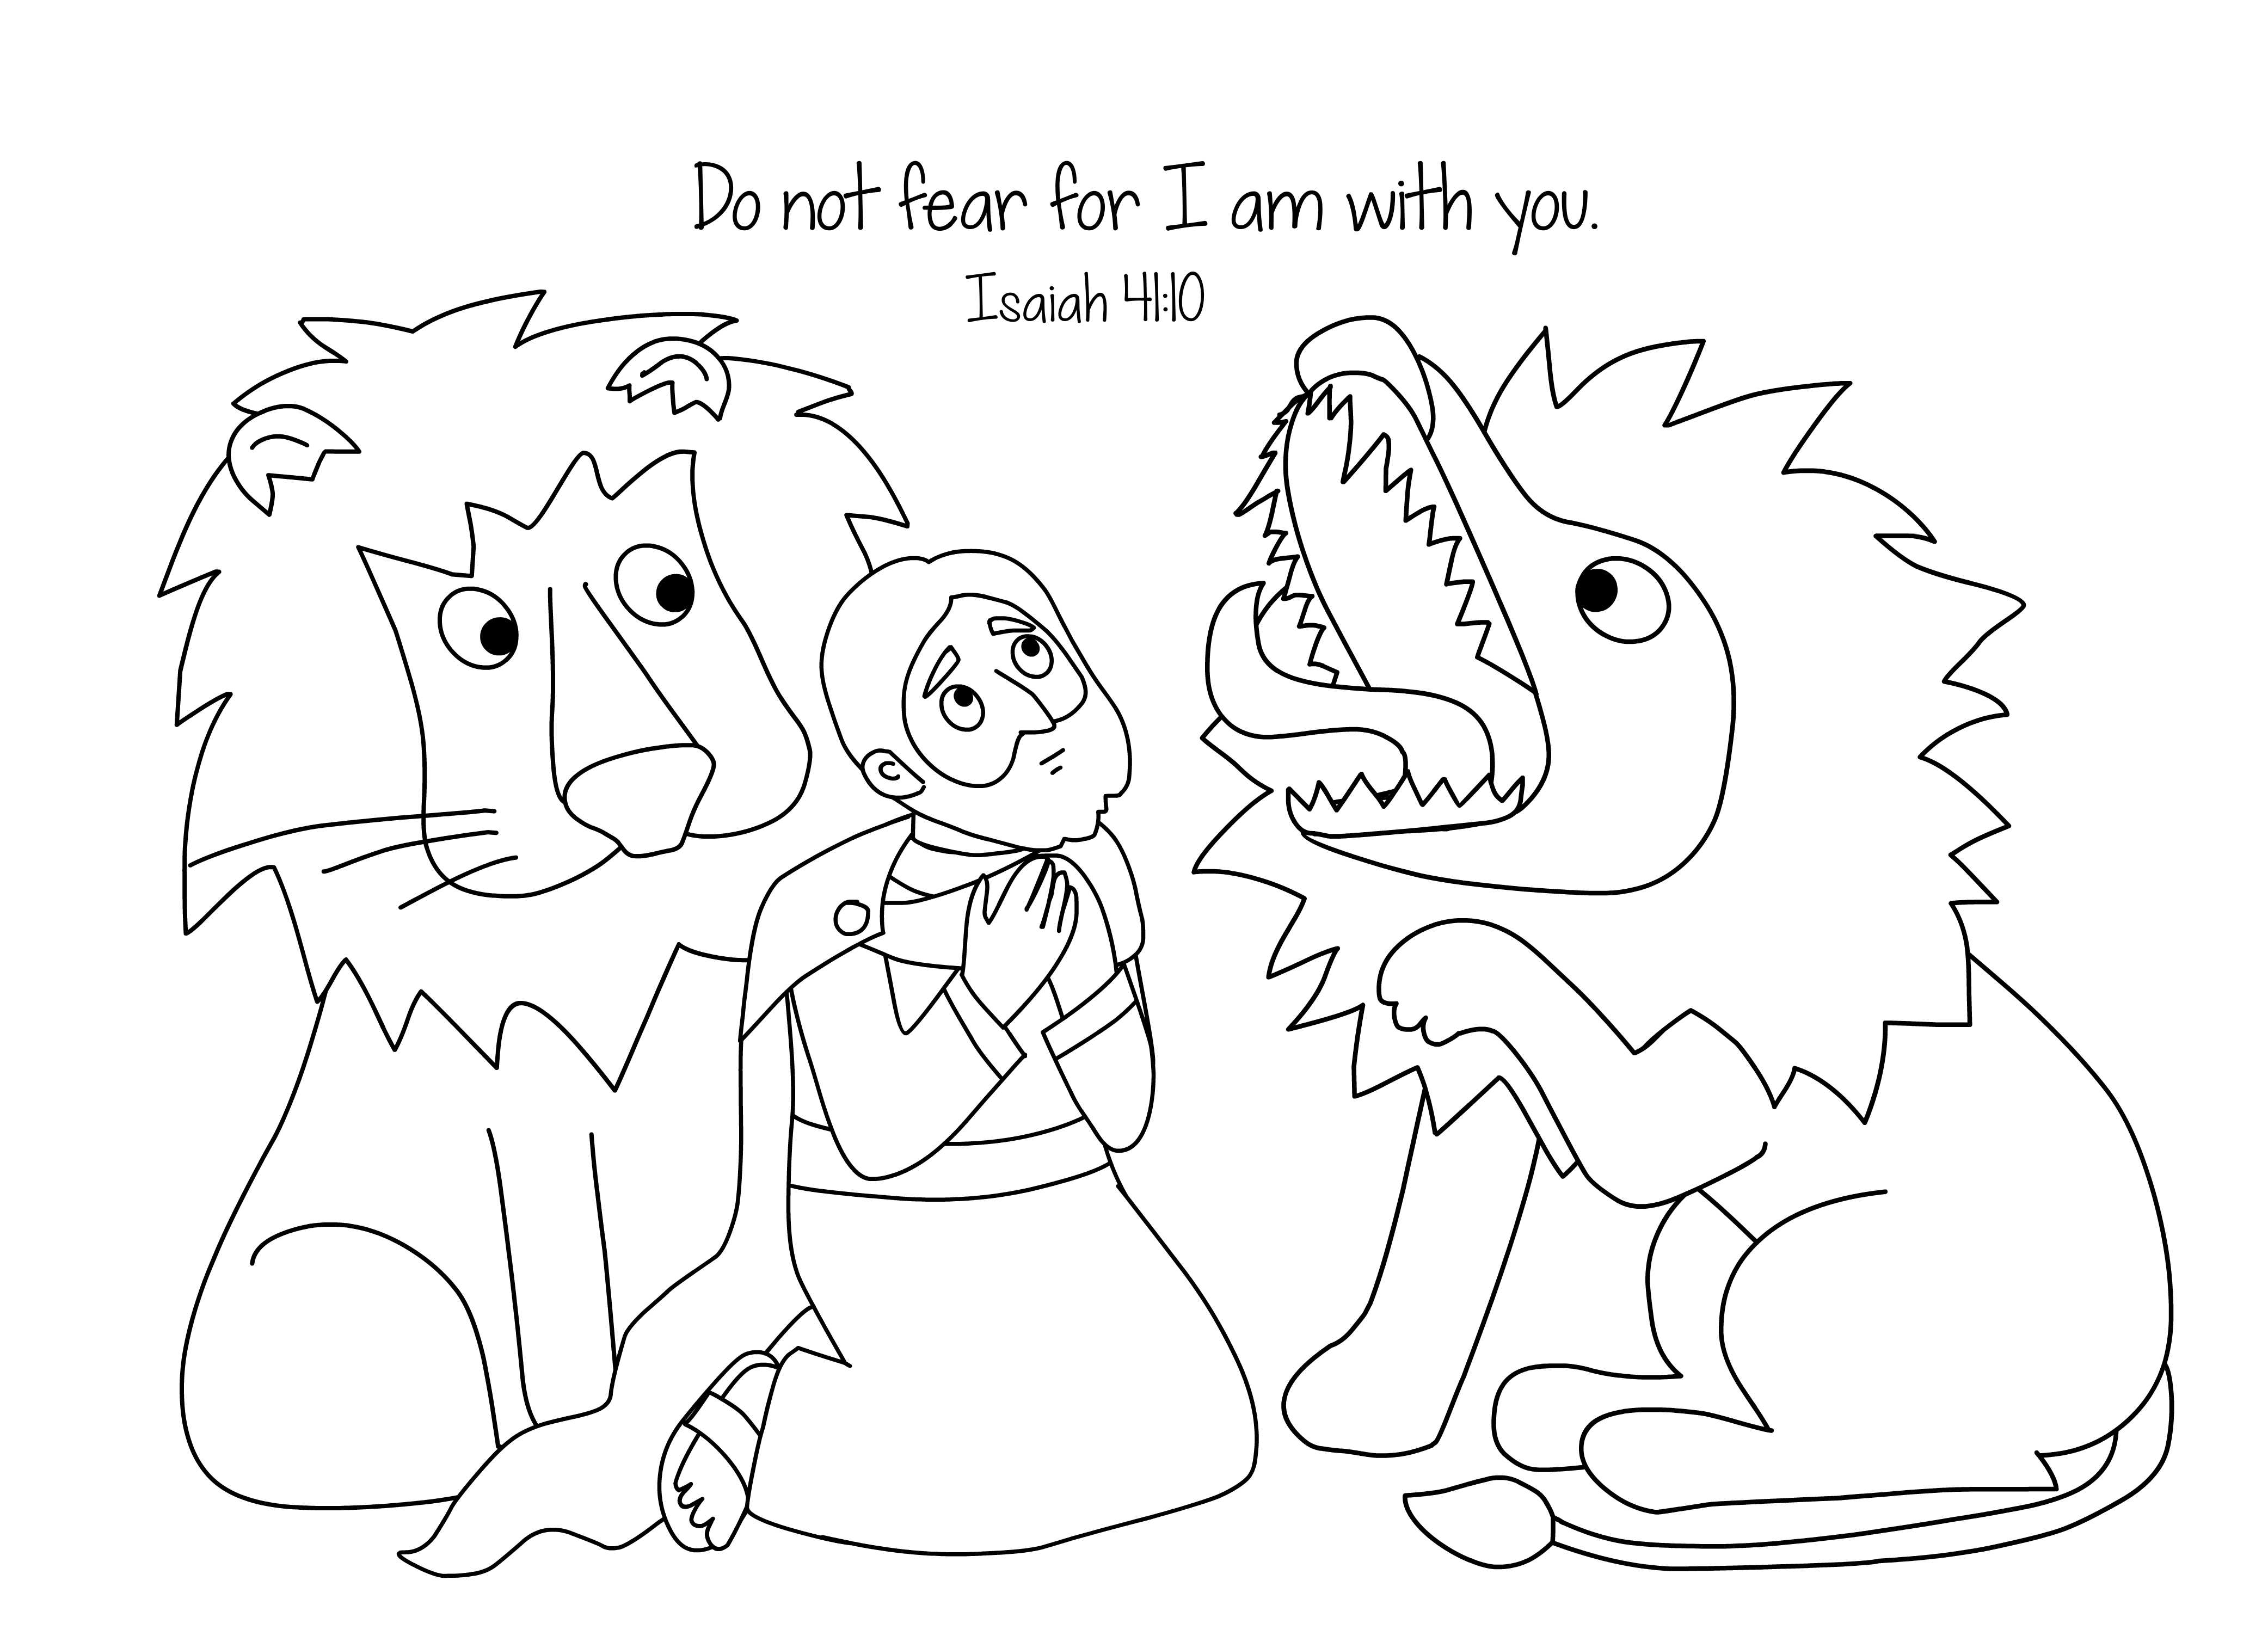 Daniel Coloring Pages Bible Gallery | Free Coloring Sheets